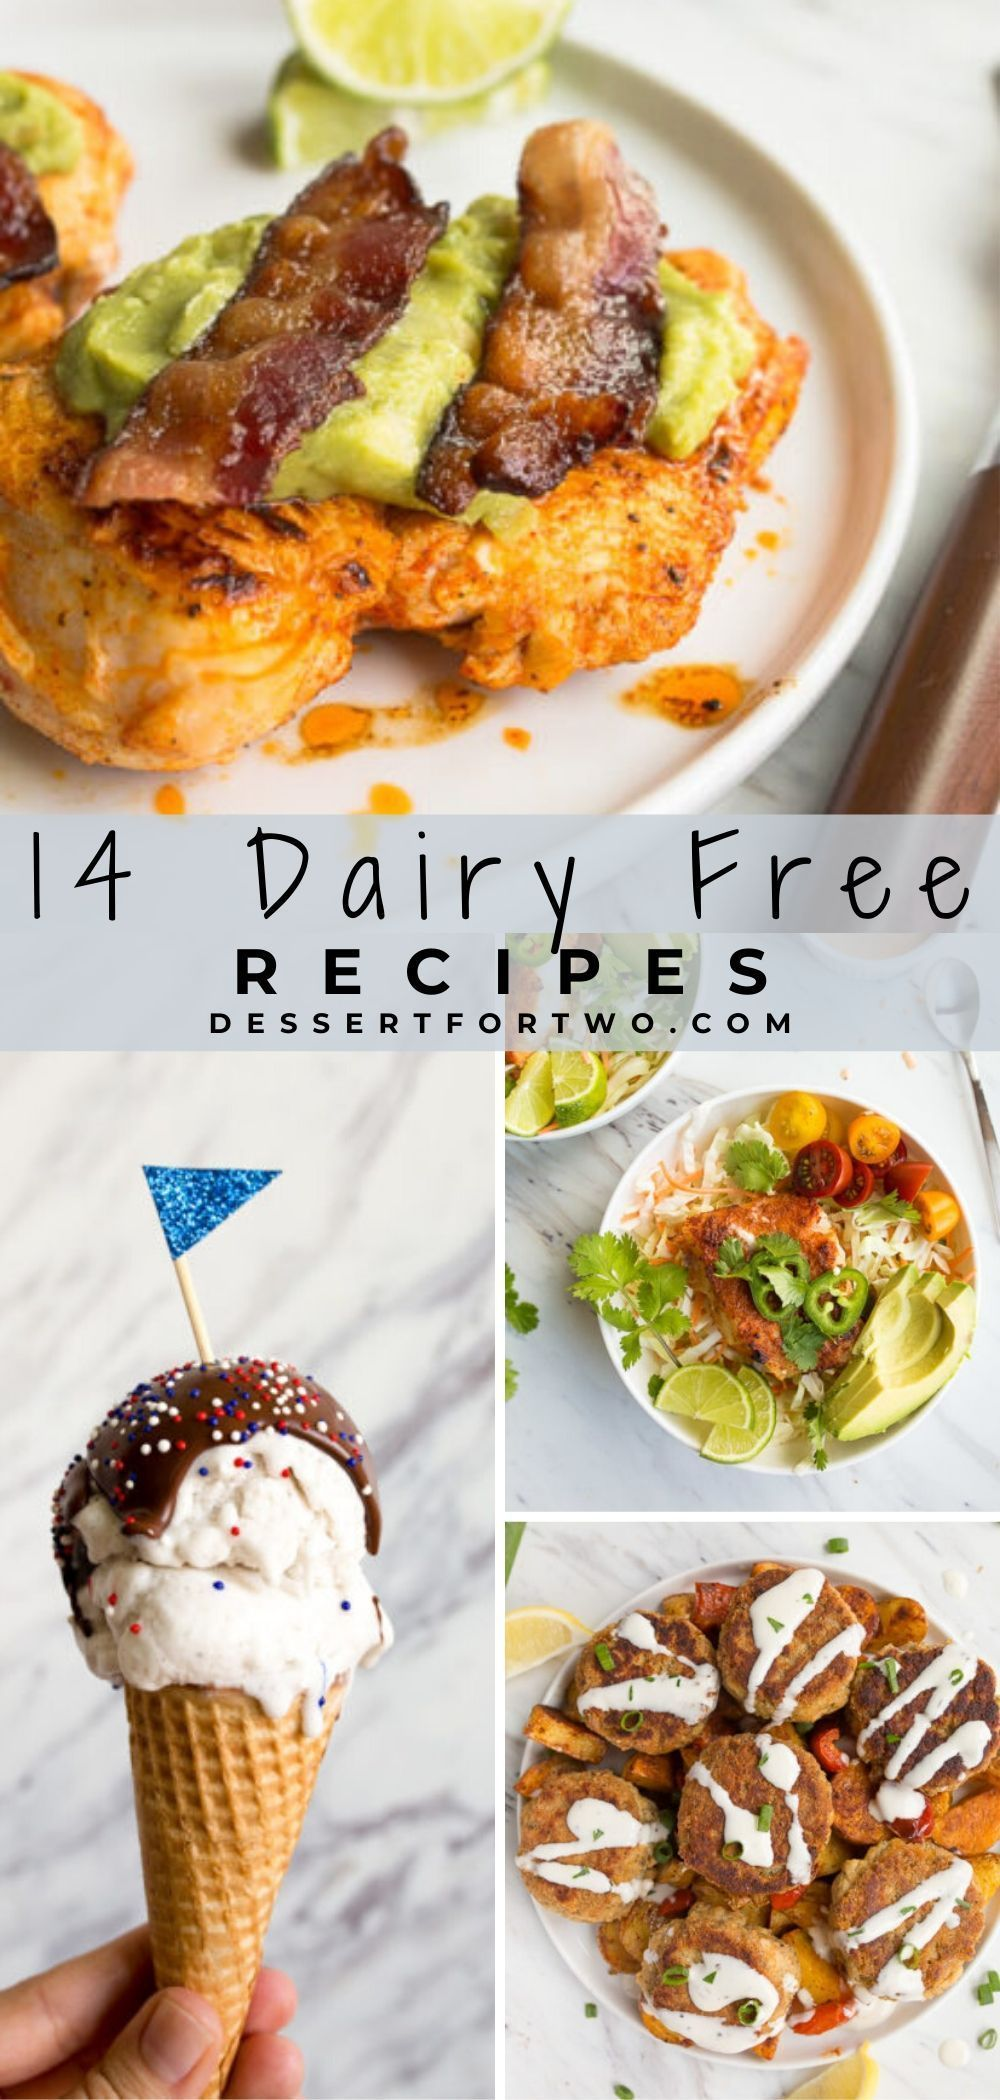 Dairy Free Recipes For Two People By Dessert For Two In 2020 Dairy Free Recipes Healthy Snacks Recipes Dairy Free Cooking